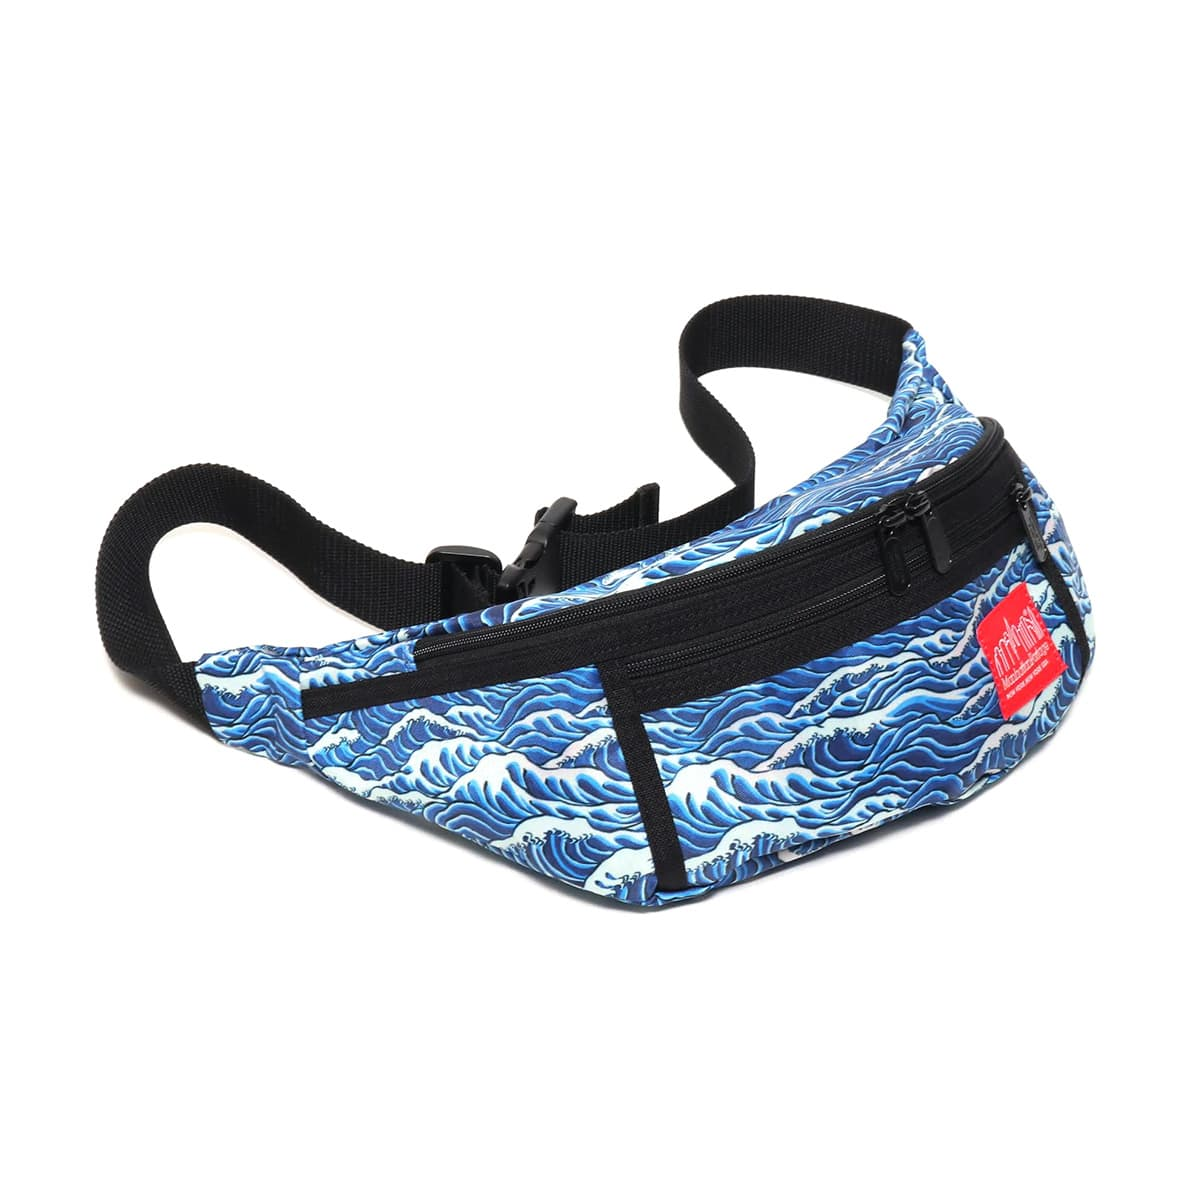 ATMOS LAB Manhattan Portage x T.T.T. x ATMOS LAB Alleycat Waist Bag  BLACK_photo_large